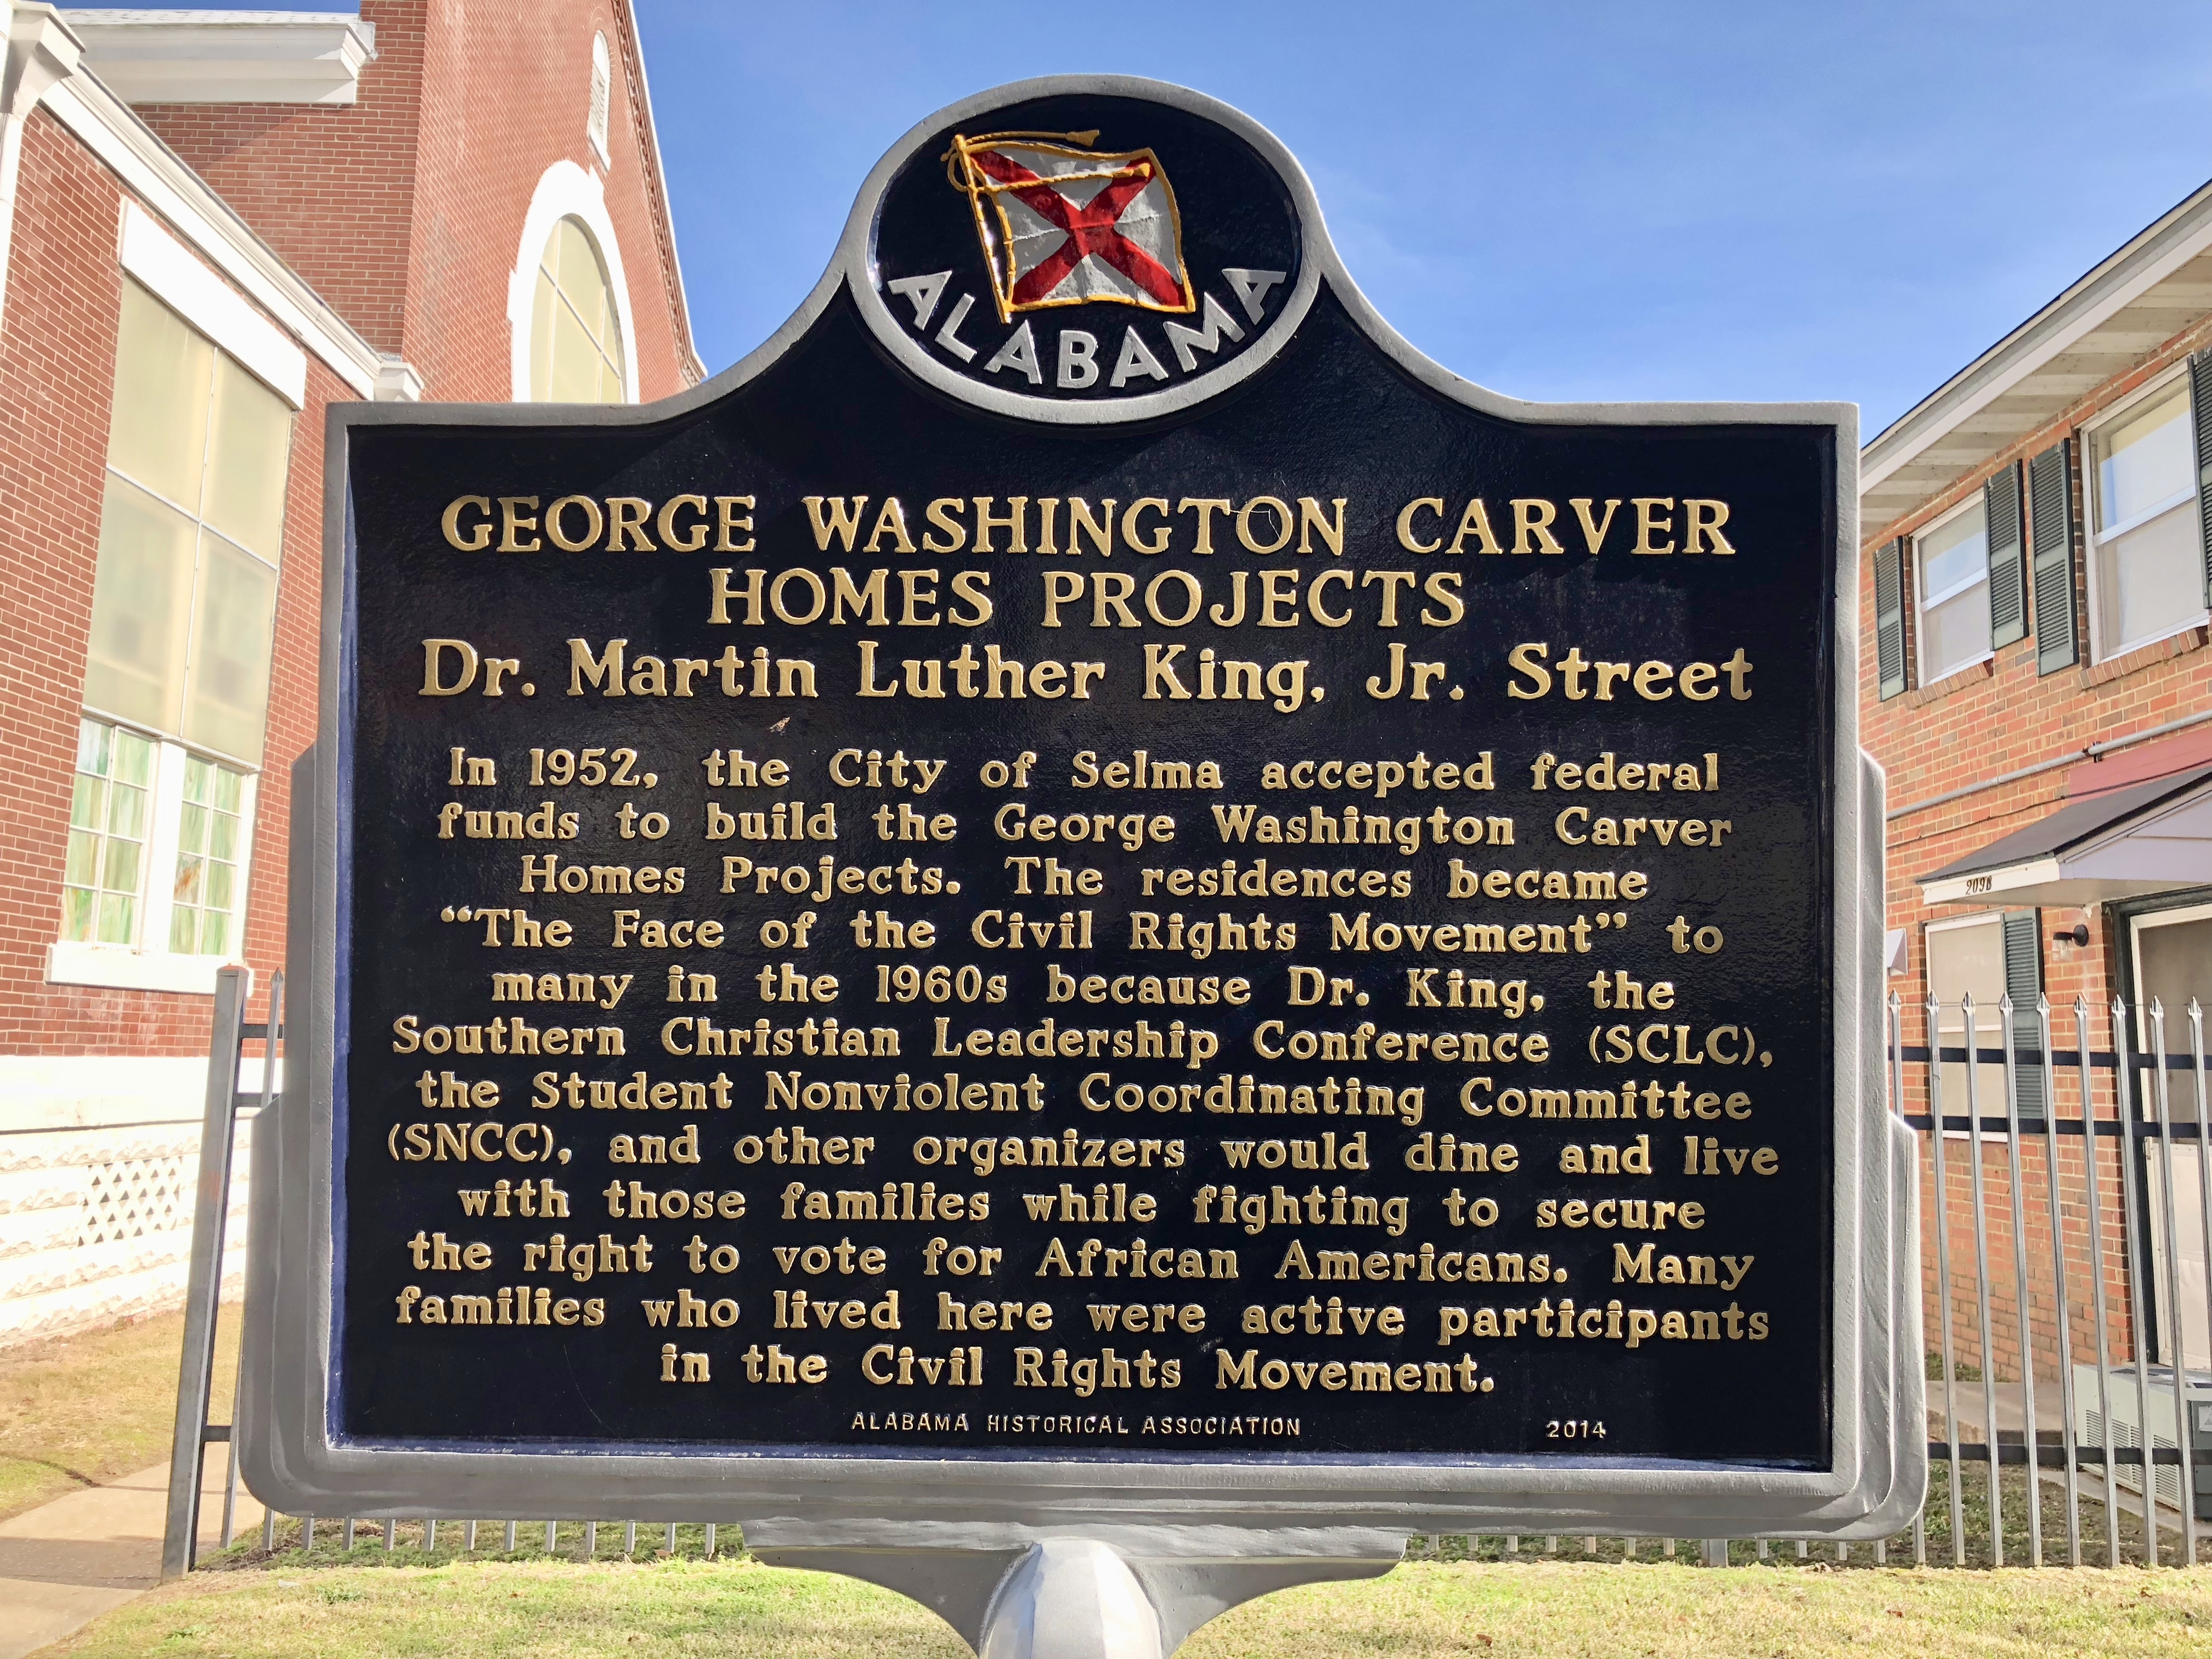 George Washington Carver Homes Projects Marker